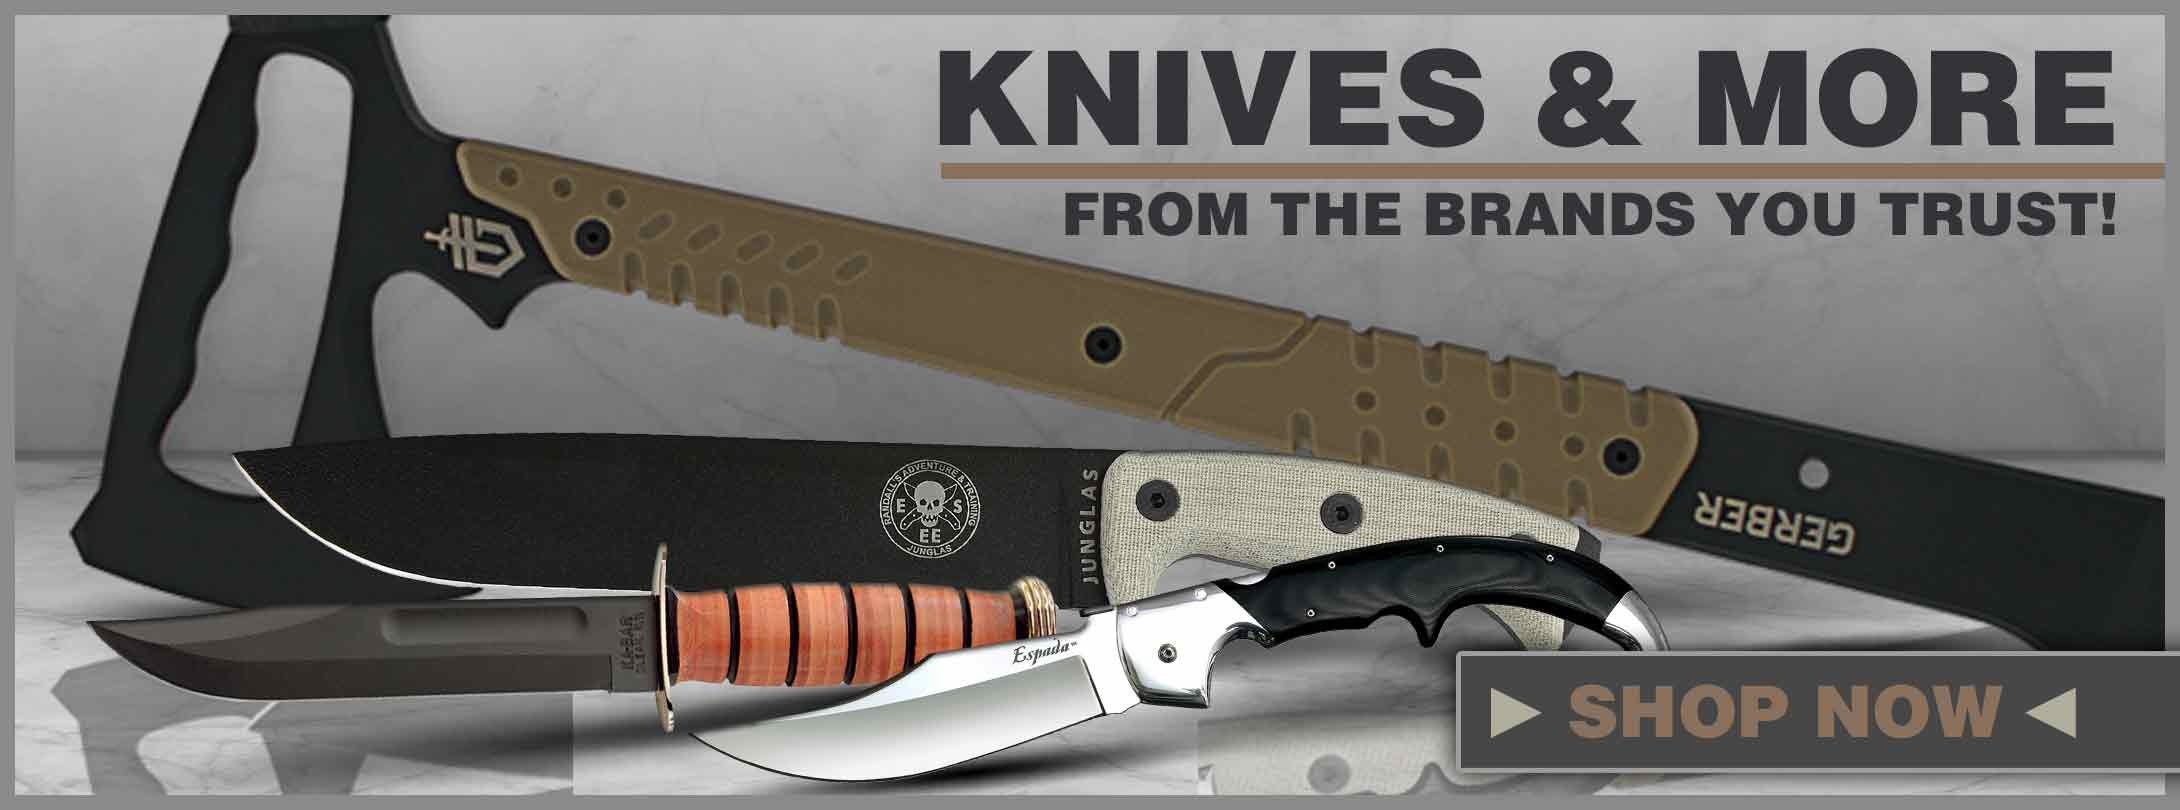 Knives & More!